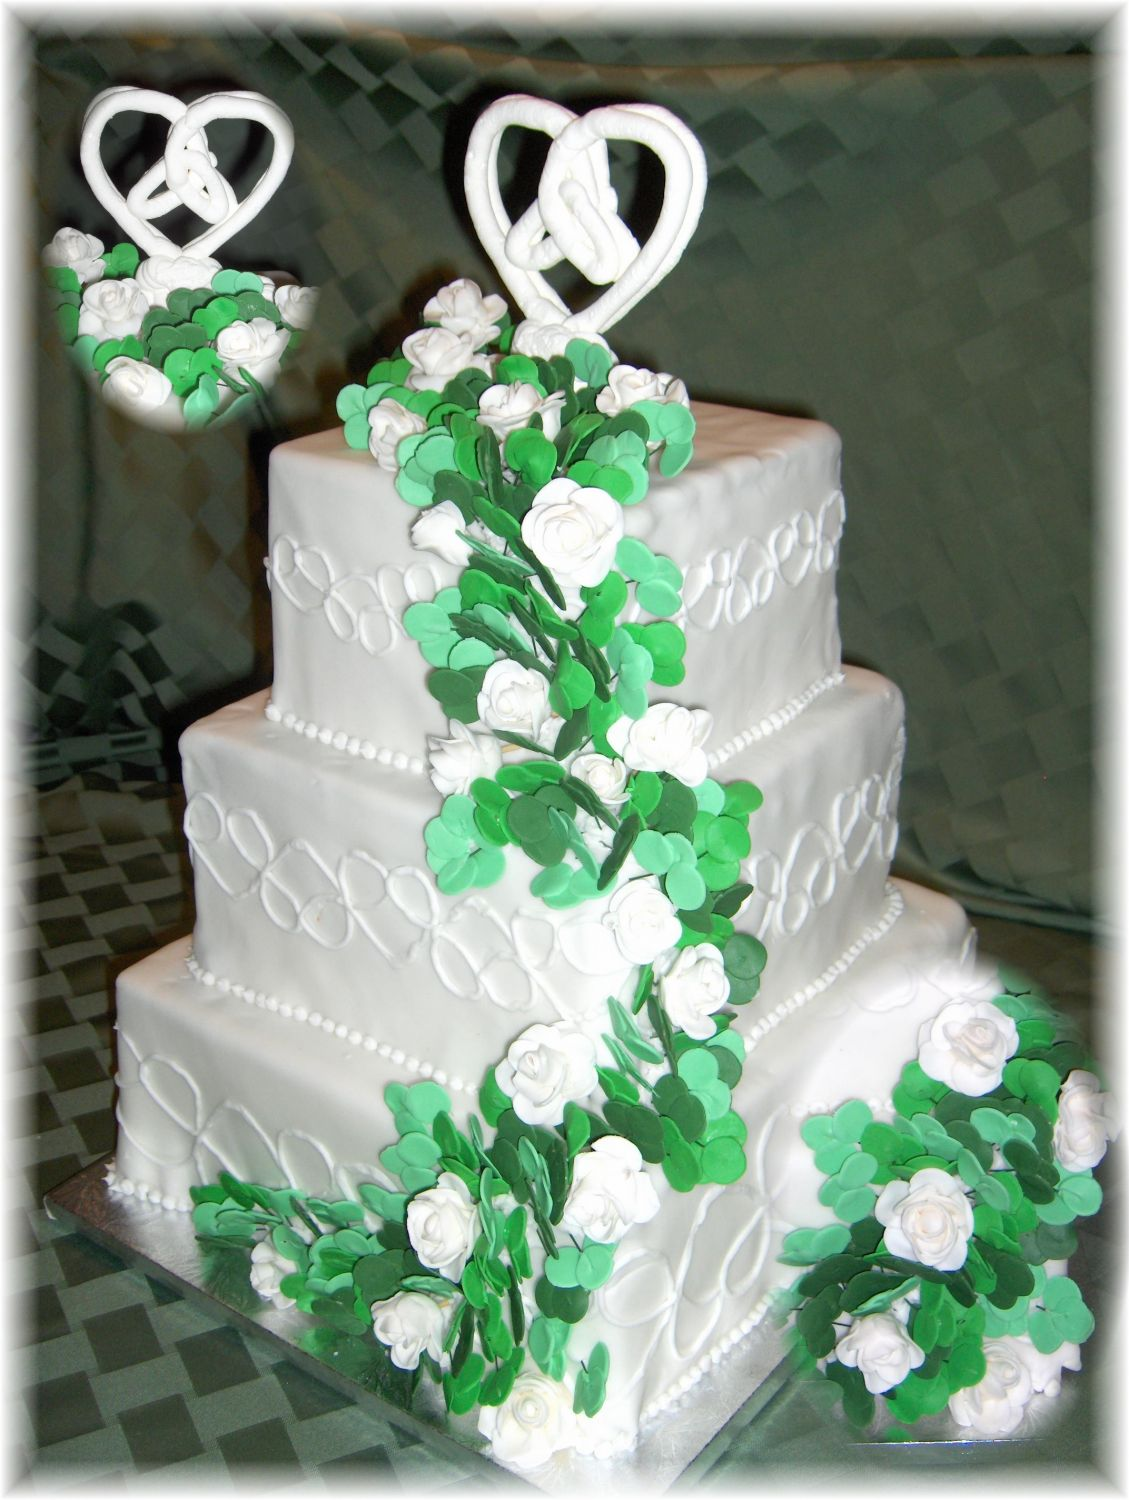 This cake ws designed around the Irish Trinity Knot.  It is a fondant covered cake with a royal icing cake topper in the shape of the Trinity Knot.  There are close to 100 gum paste shamrocks and 20 white gum paste roses on this cake.  The sides are decorated with Trinity Knot as well.  This picture includes a close up of the topper as well as the shamrocks.